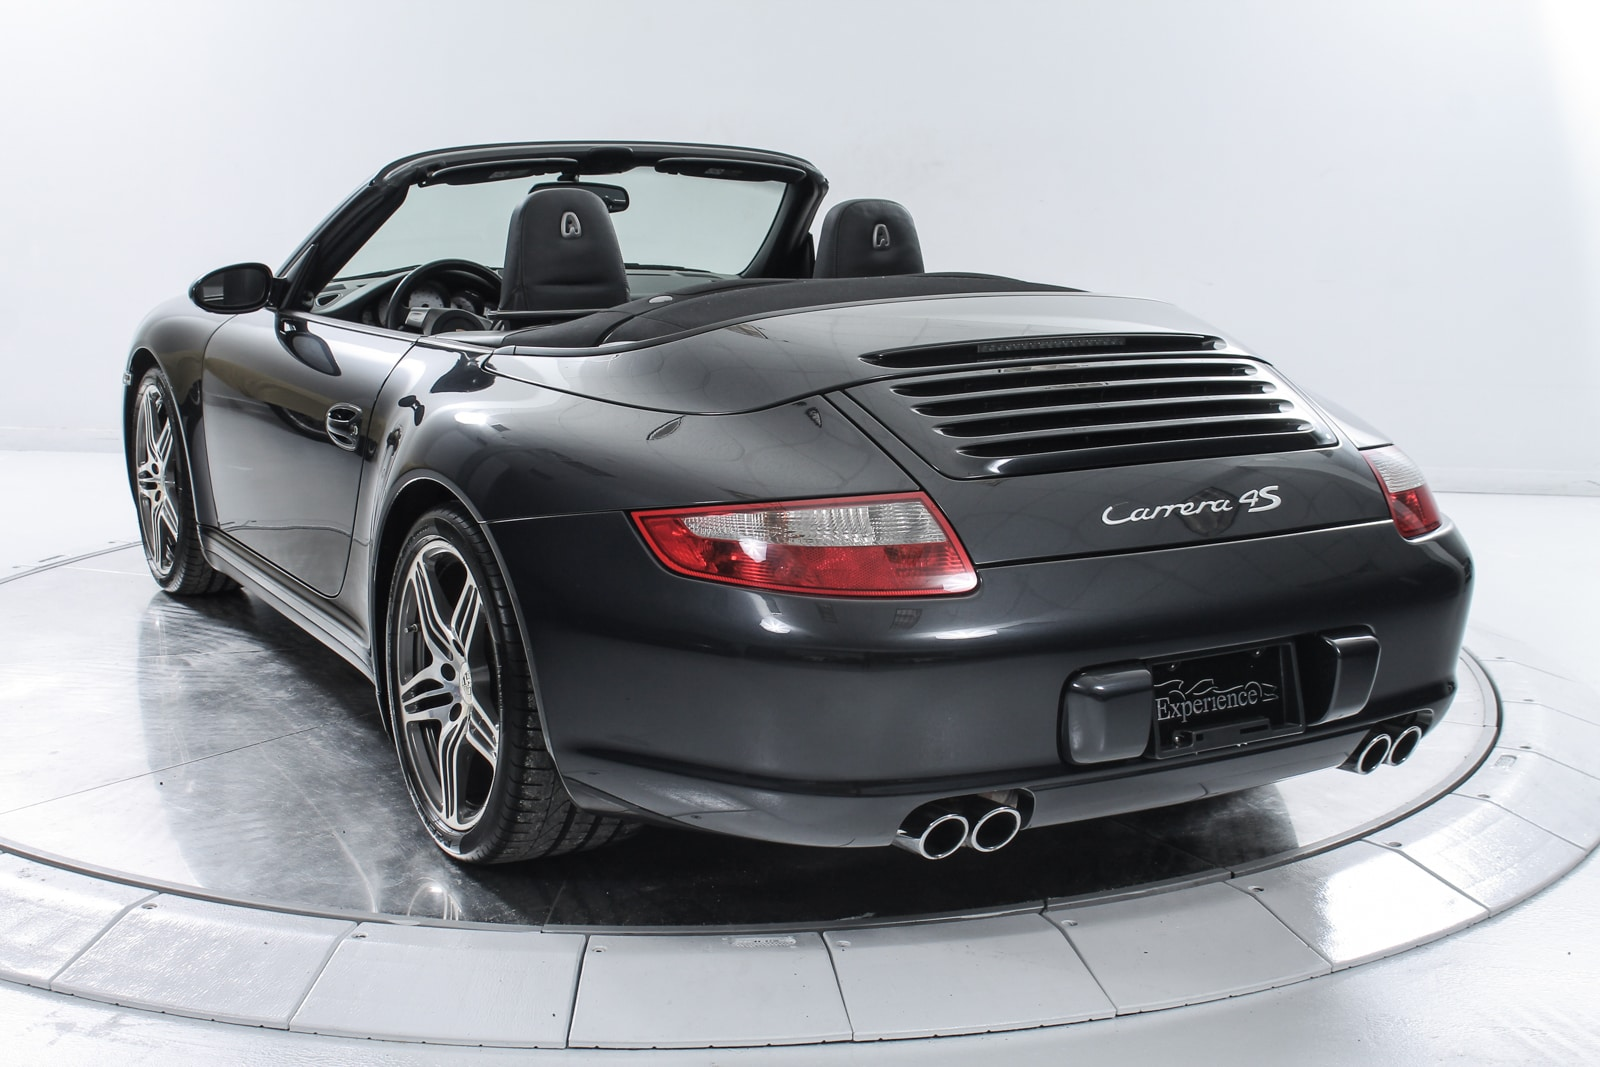 used 2006 porsche 911 carrera 4s cabriolet for sale. Black Bedroom Furniture Sets. Home Design Ideas